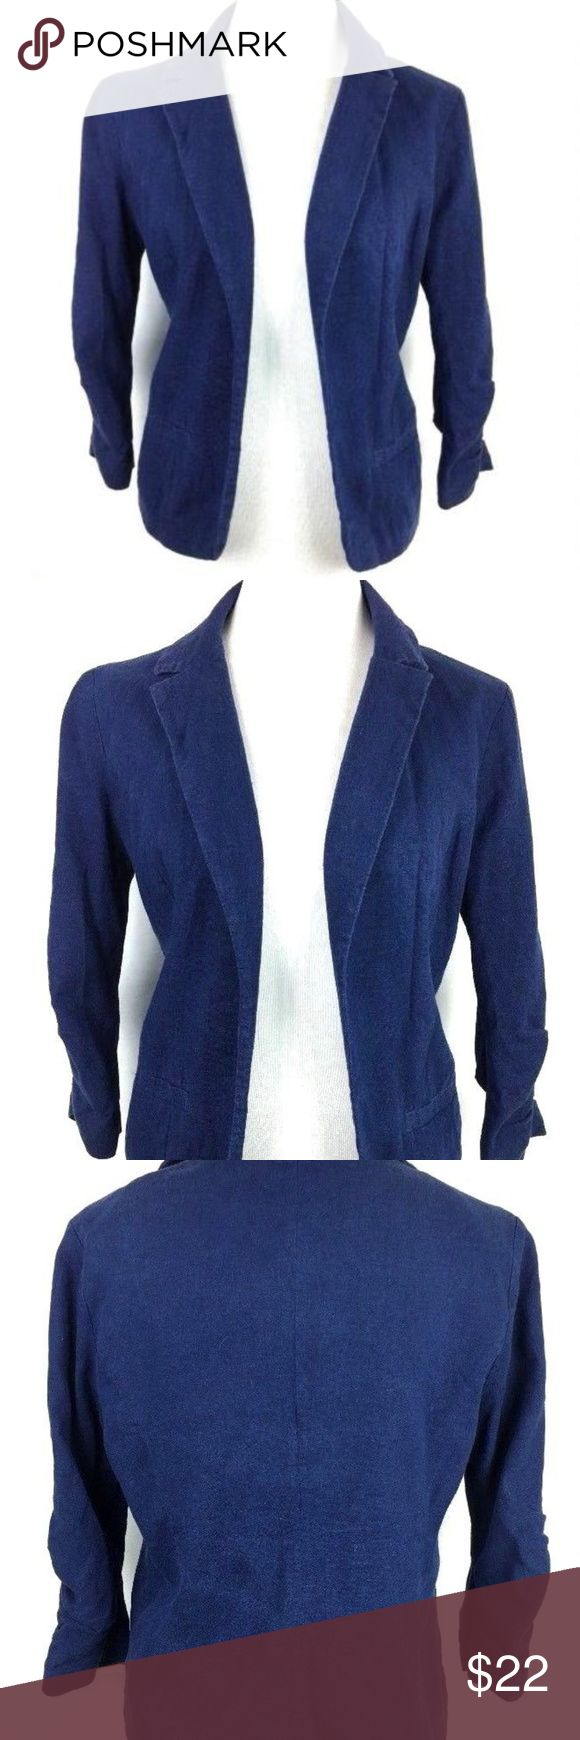 "French Connection Women's Linen jacket Medium French Connection linen-blend jacket Size Medium 17"" armpit to armpit 15.5"" flat lay waist 22"" center of back under collar to bottom length No holes, stains or visible wear French Connection Jackets & Coats Blazers"